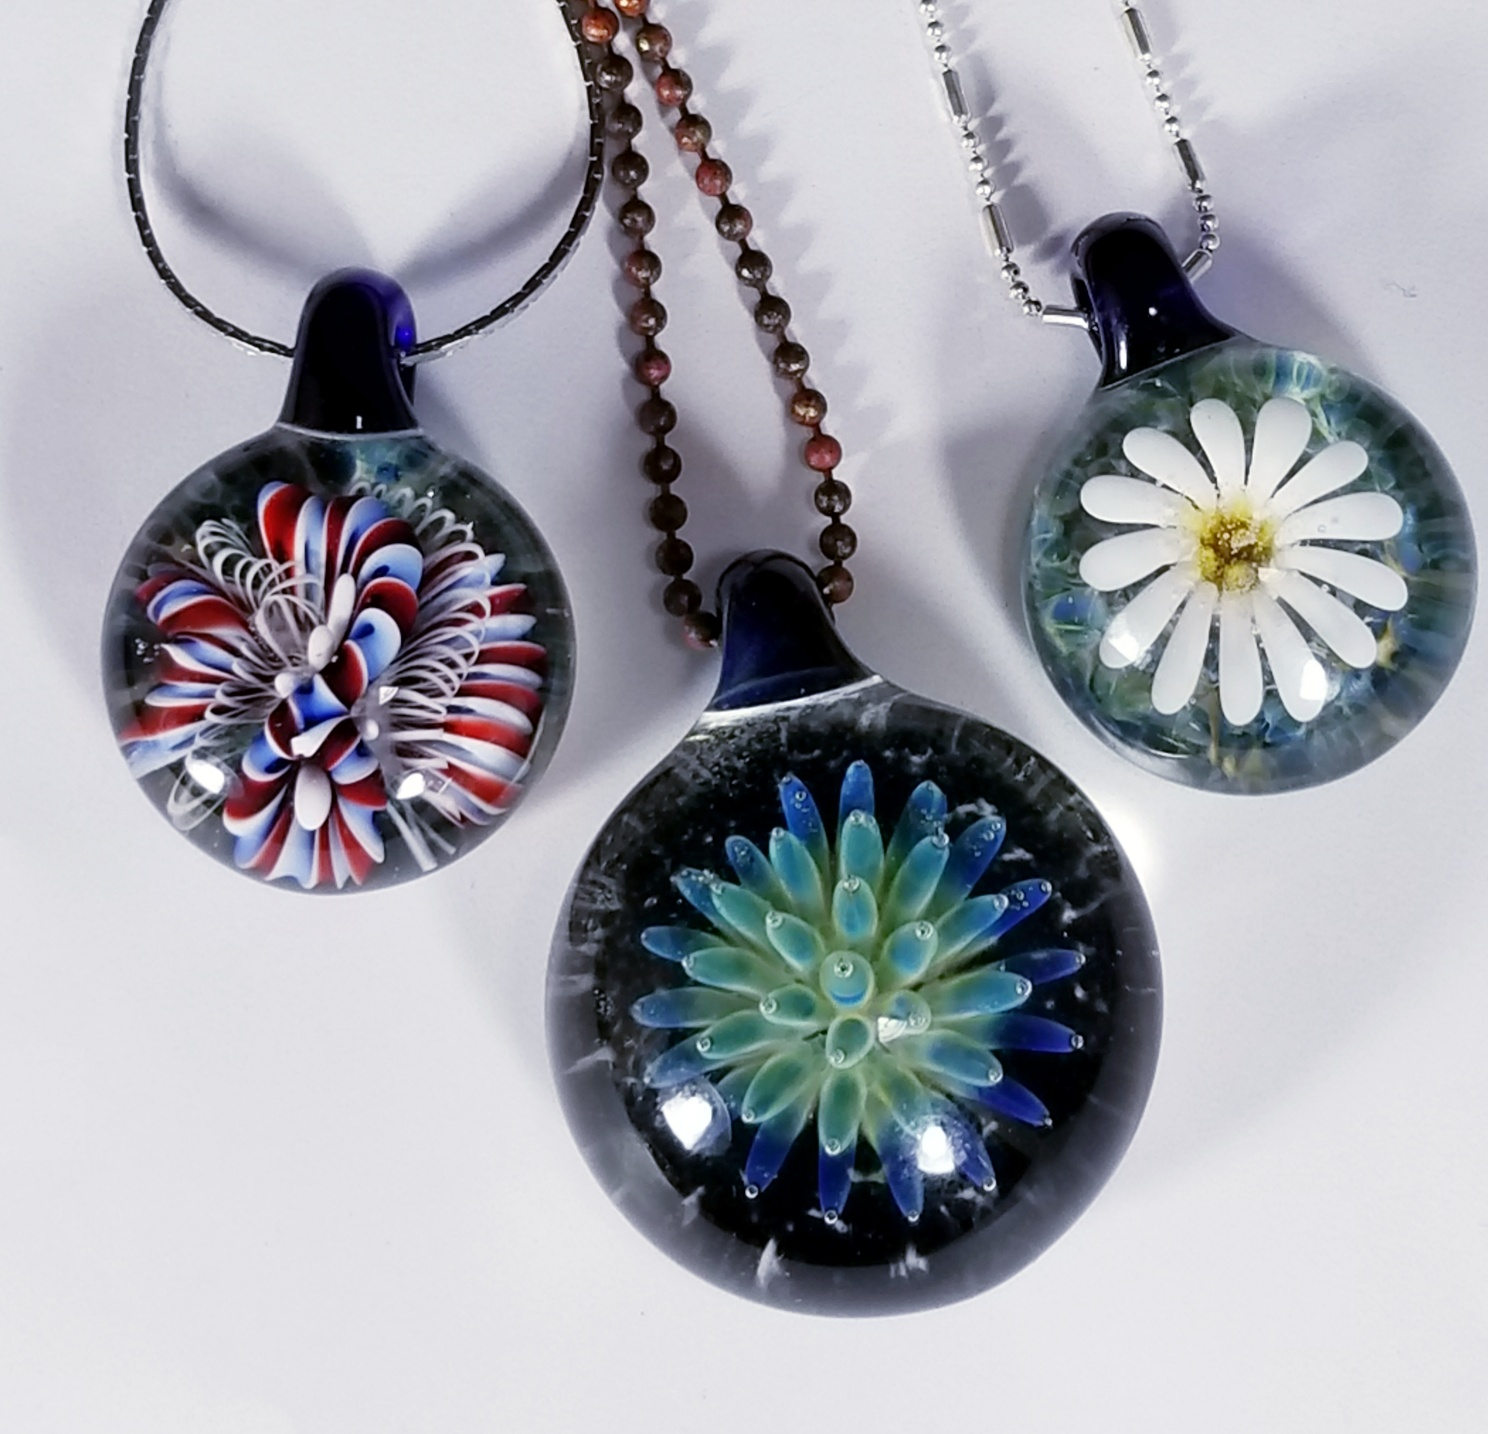 """Leslie Anne Bitgood - """"The day I turned on a torch for the first time, melted glass onto a mandrel and made my first wonky beads. I knew at that point I was addicted!""""Website"""